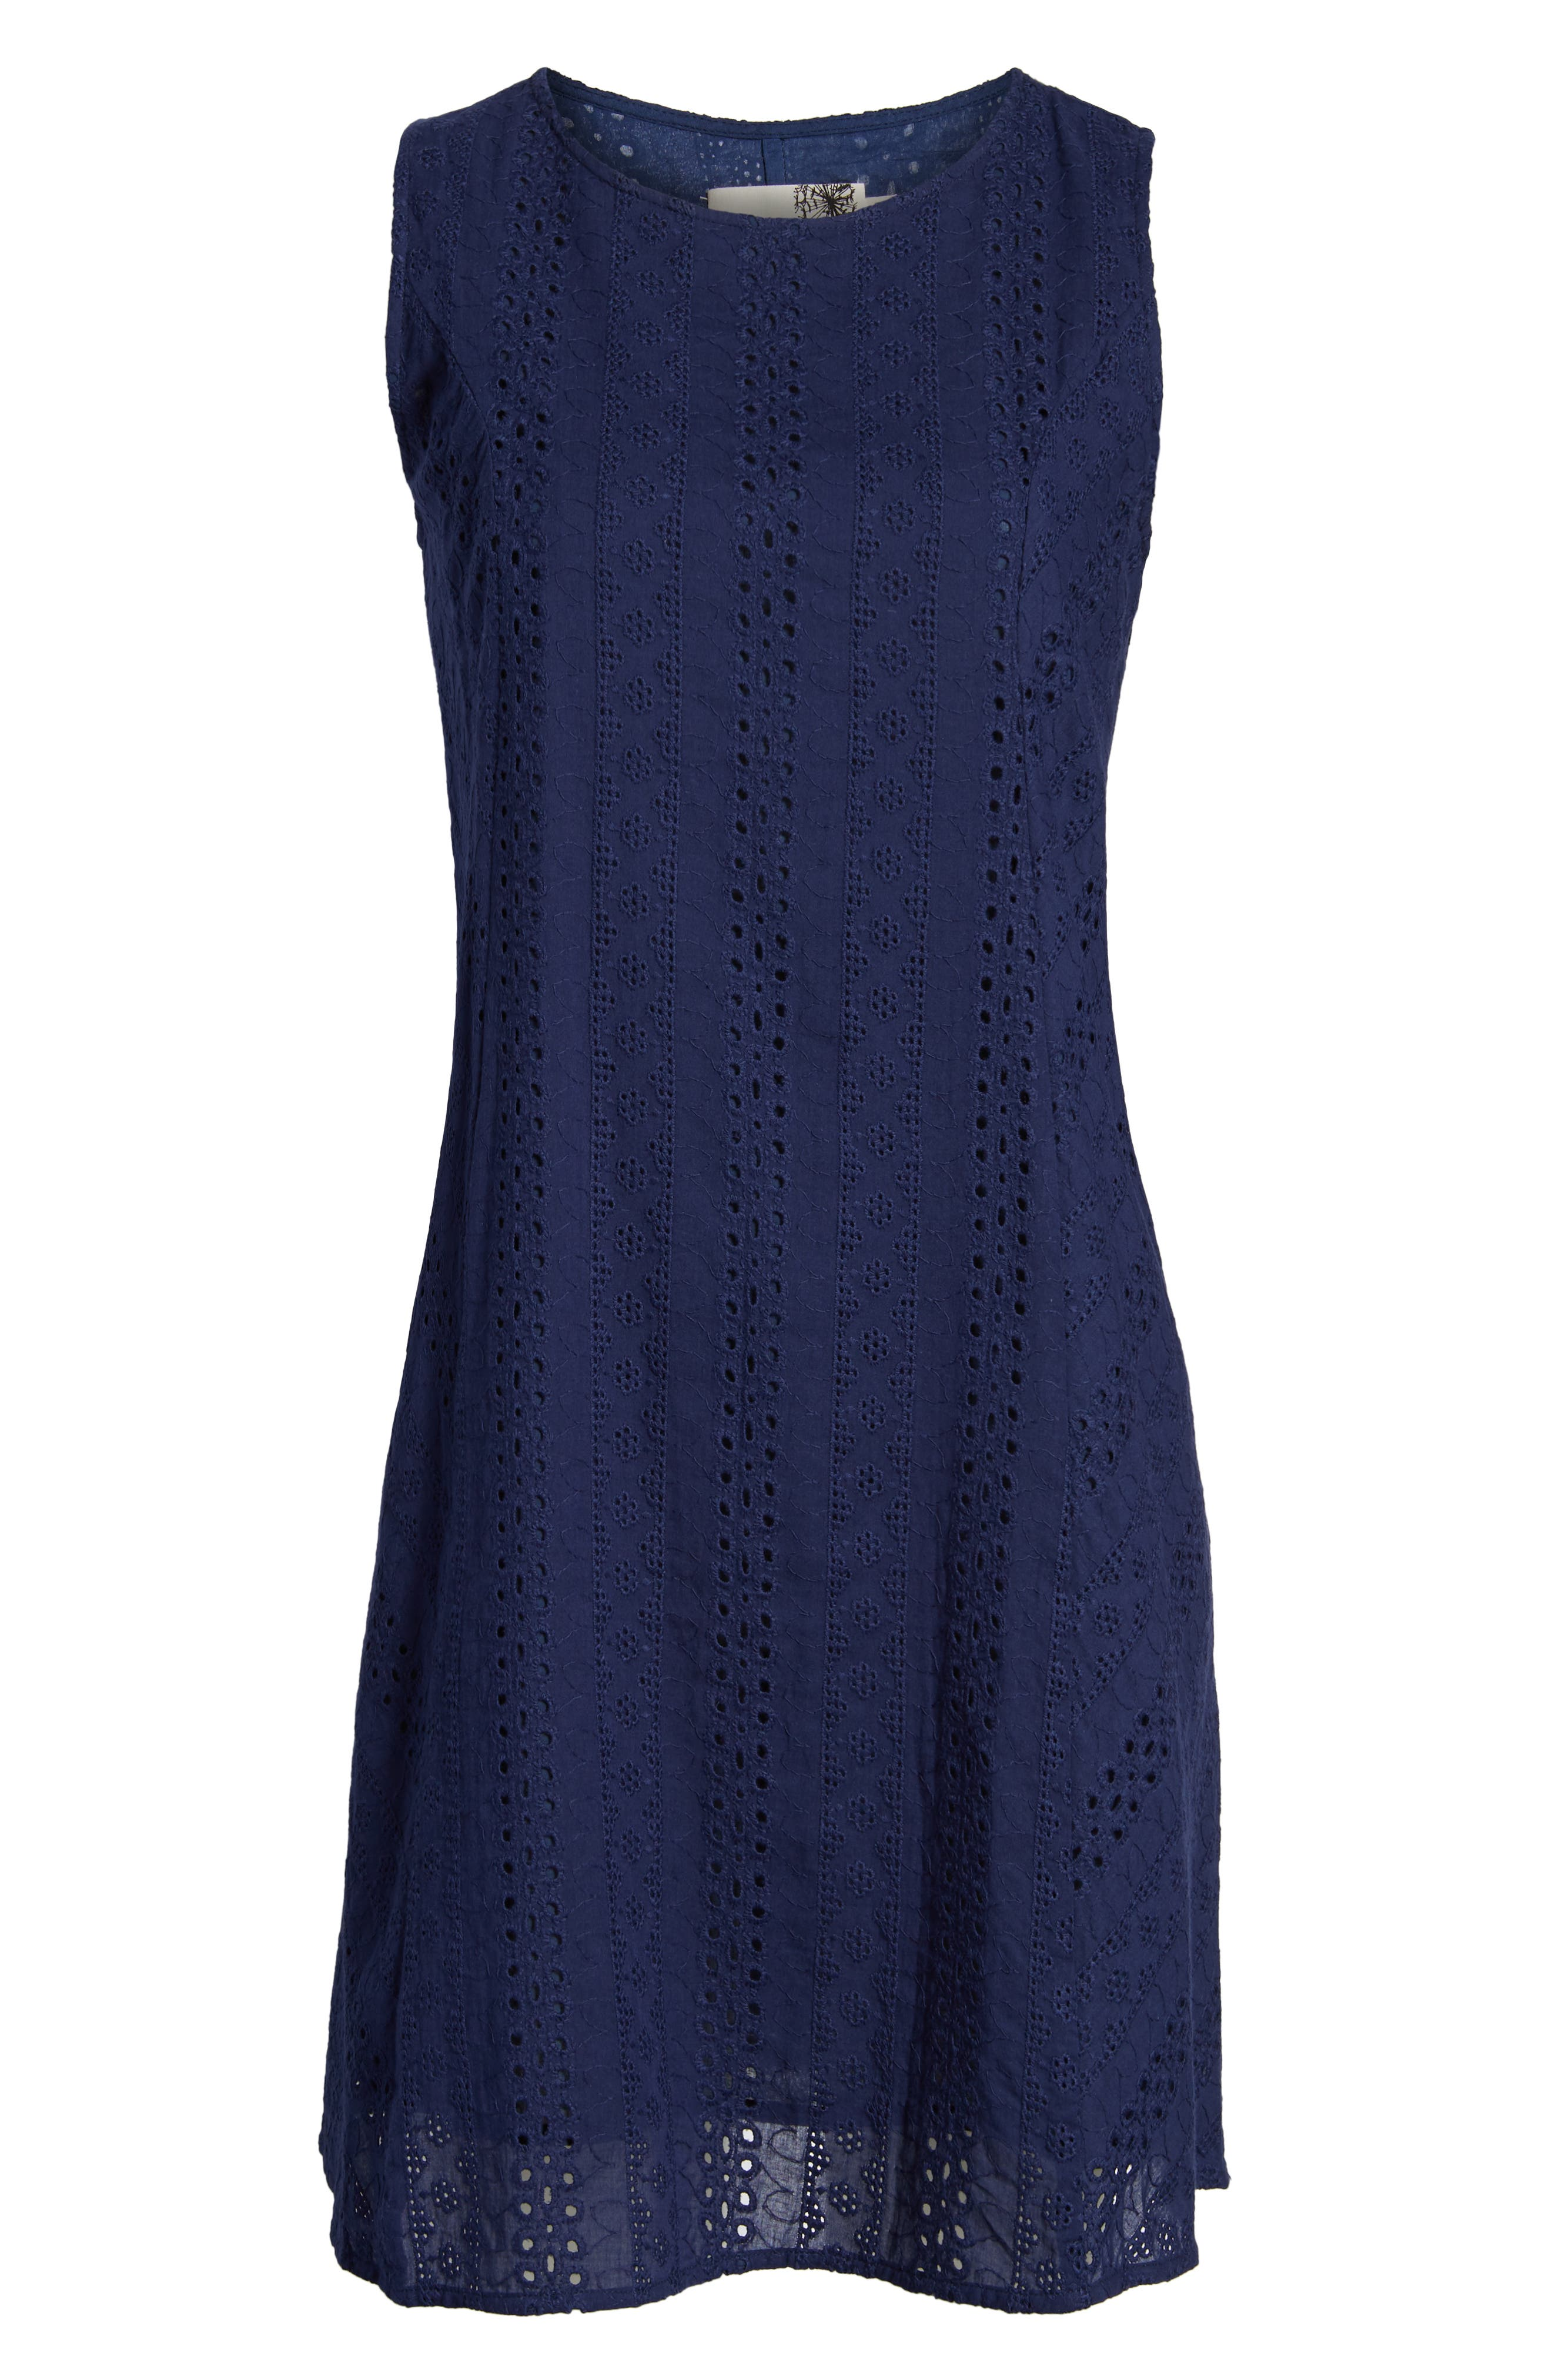 Eyelet Shift Dress,                             Alternate thumbnail 6, color,                             Navy